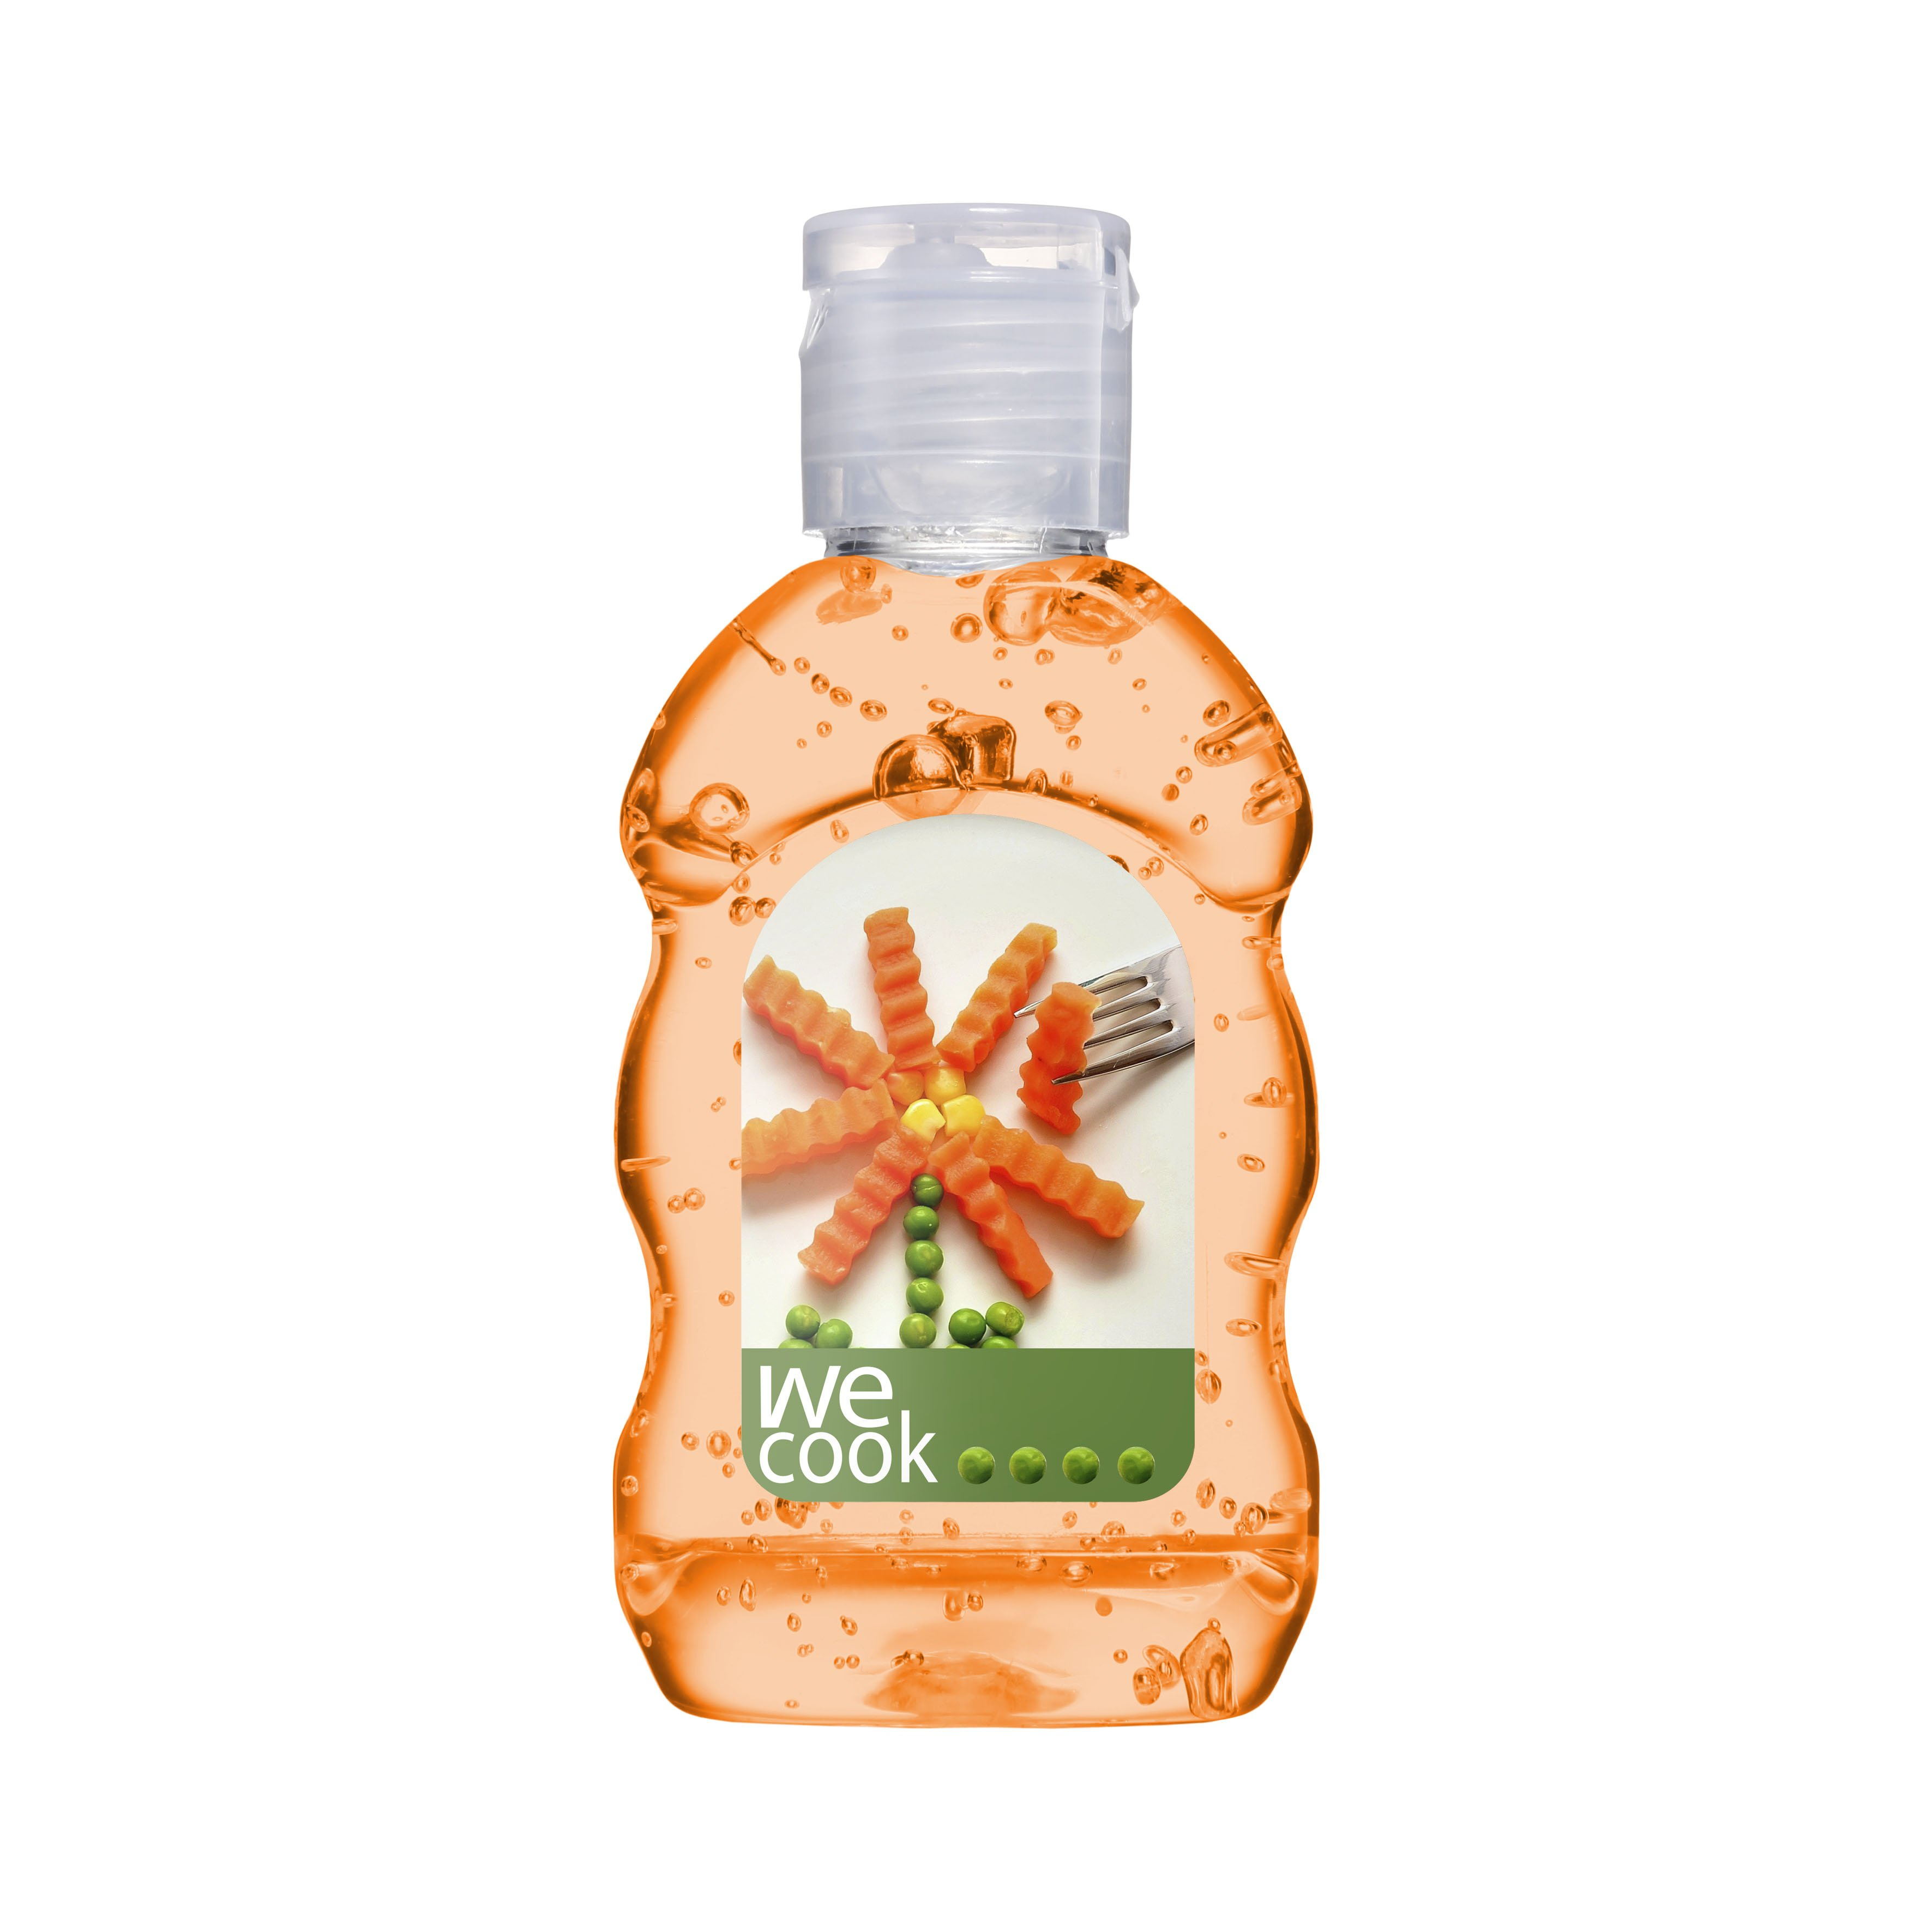 Care & More hand cleansing gel